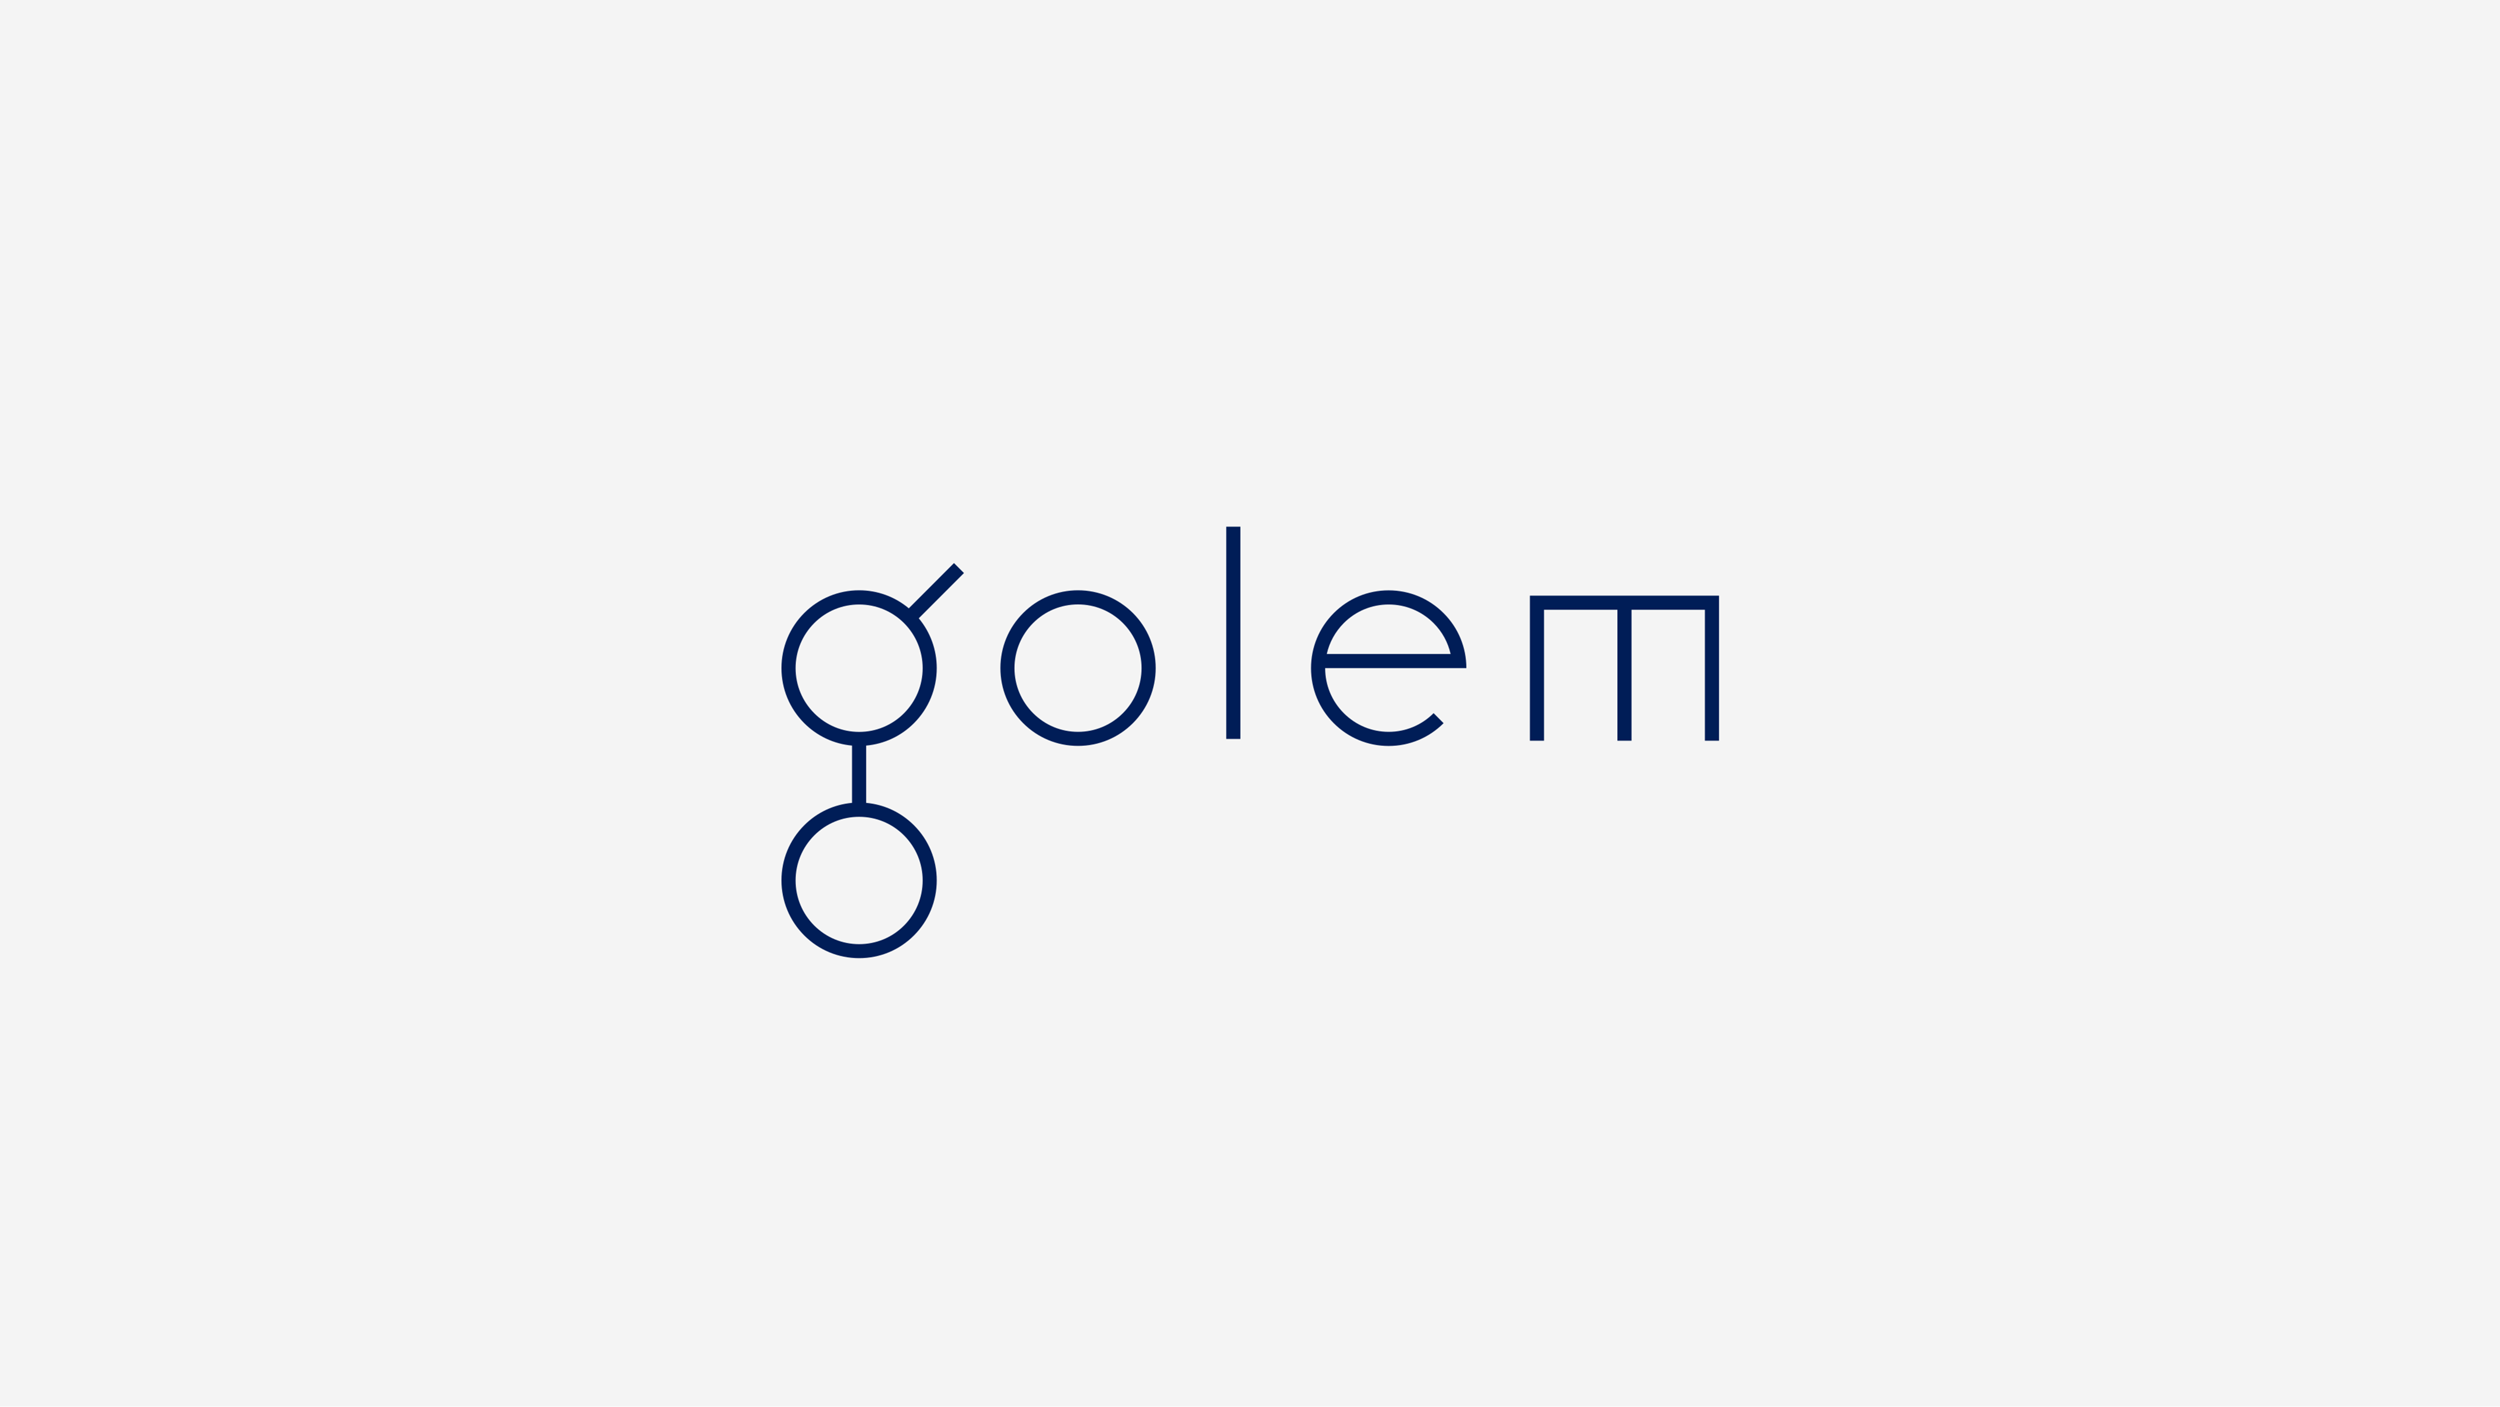 Golem (2015-2017) - The Codeine Design